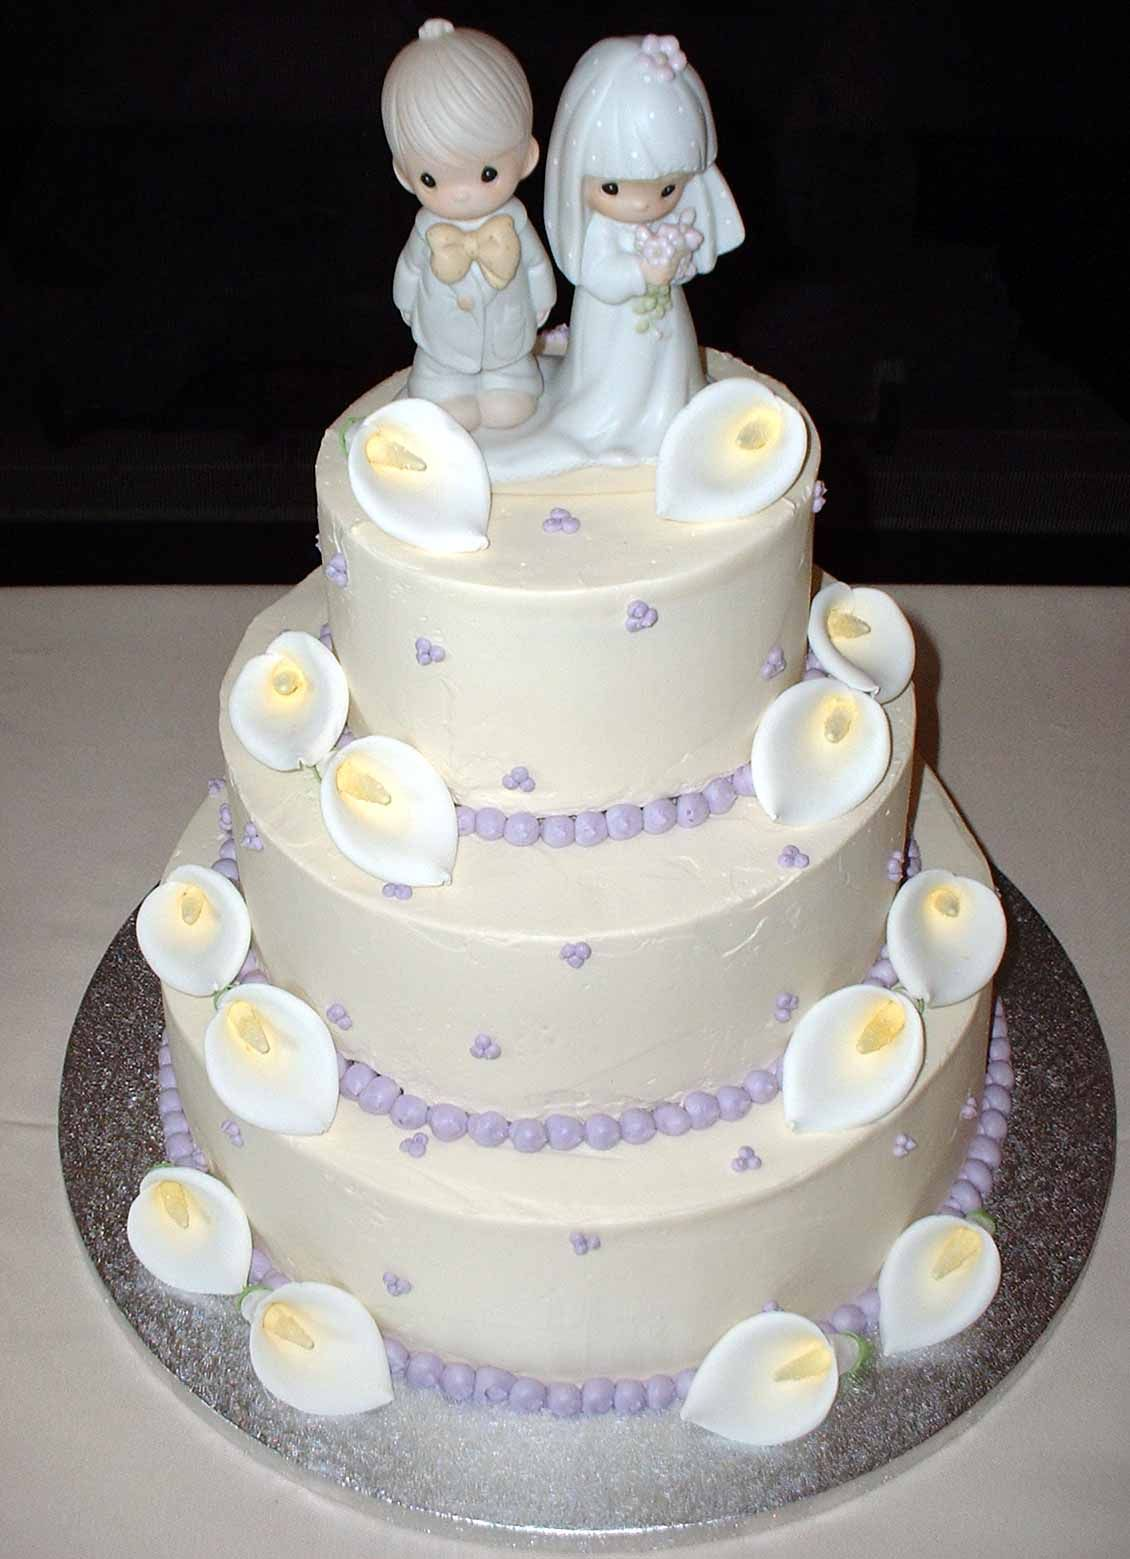 Wedding Cake Design Ideas wedding cake ideas from inspired by michelle cake designs 1000 Images About Wedding Cakes On Pinterest Wedding Cakes Images Of Wedding Cakes And Shades Of Purple